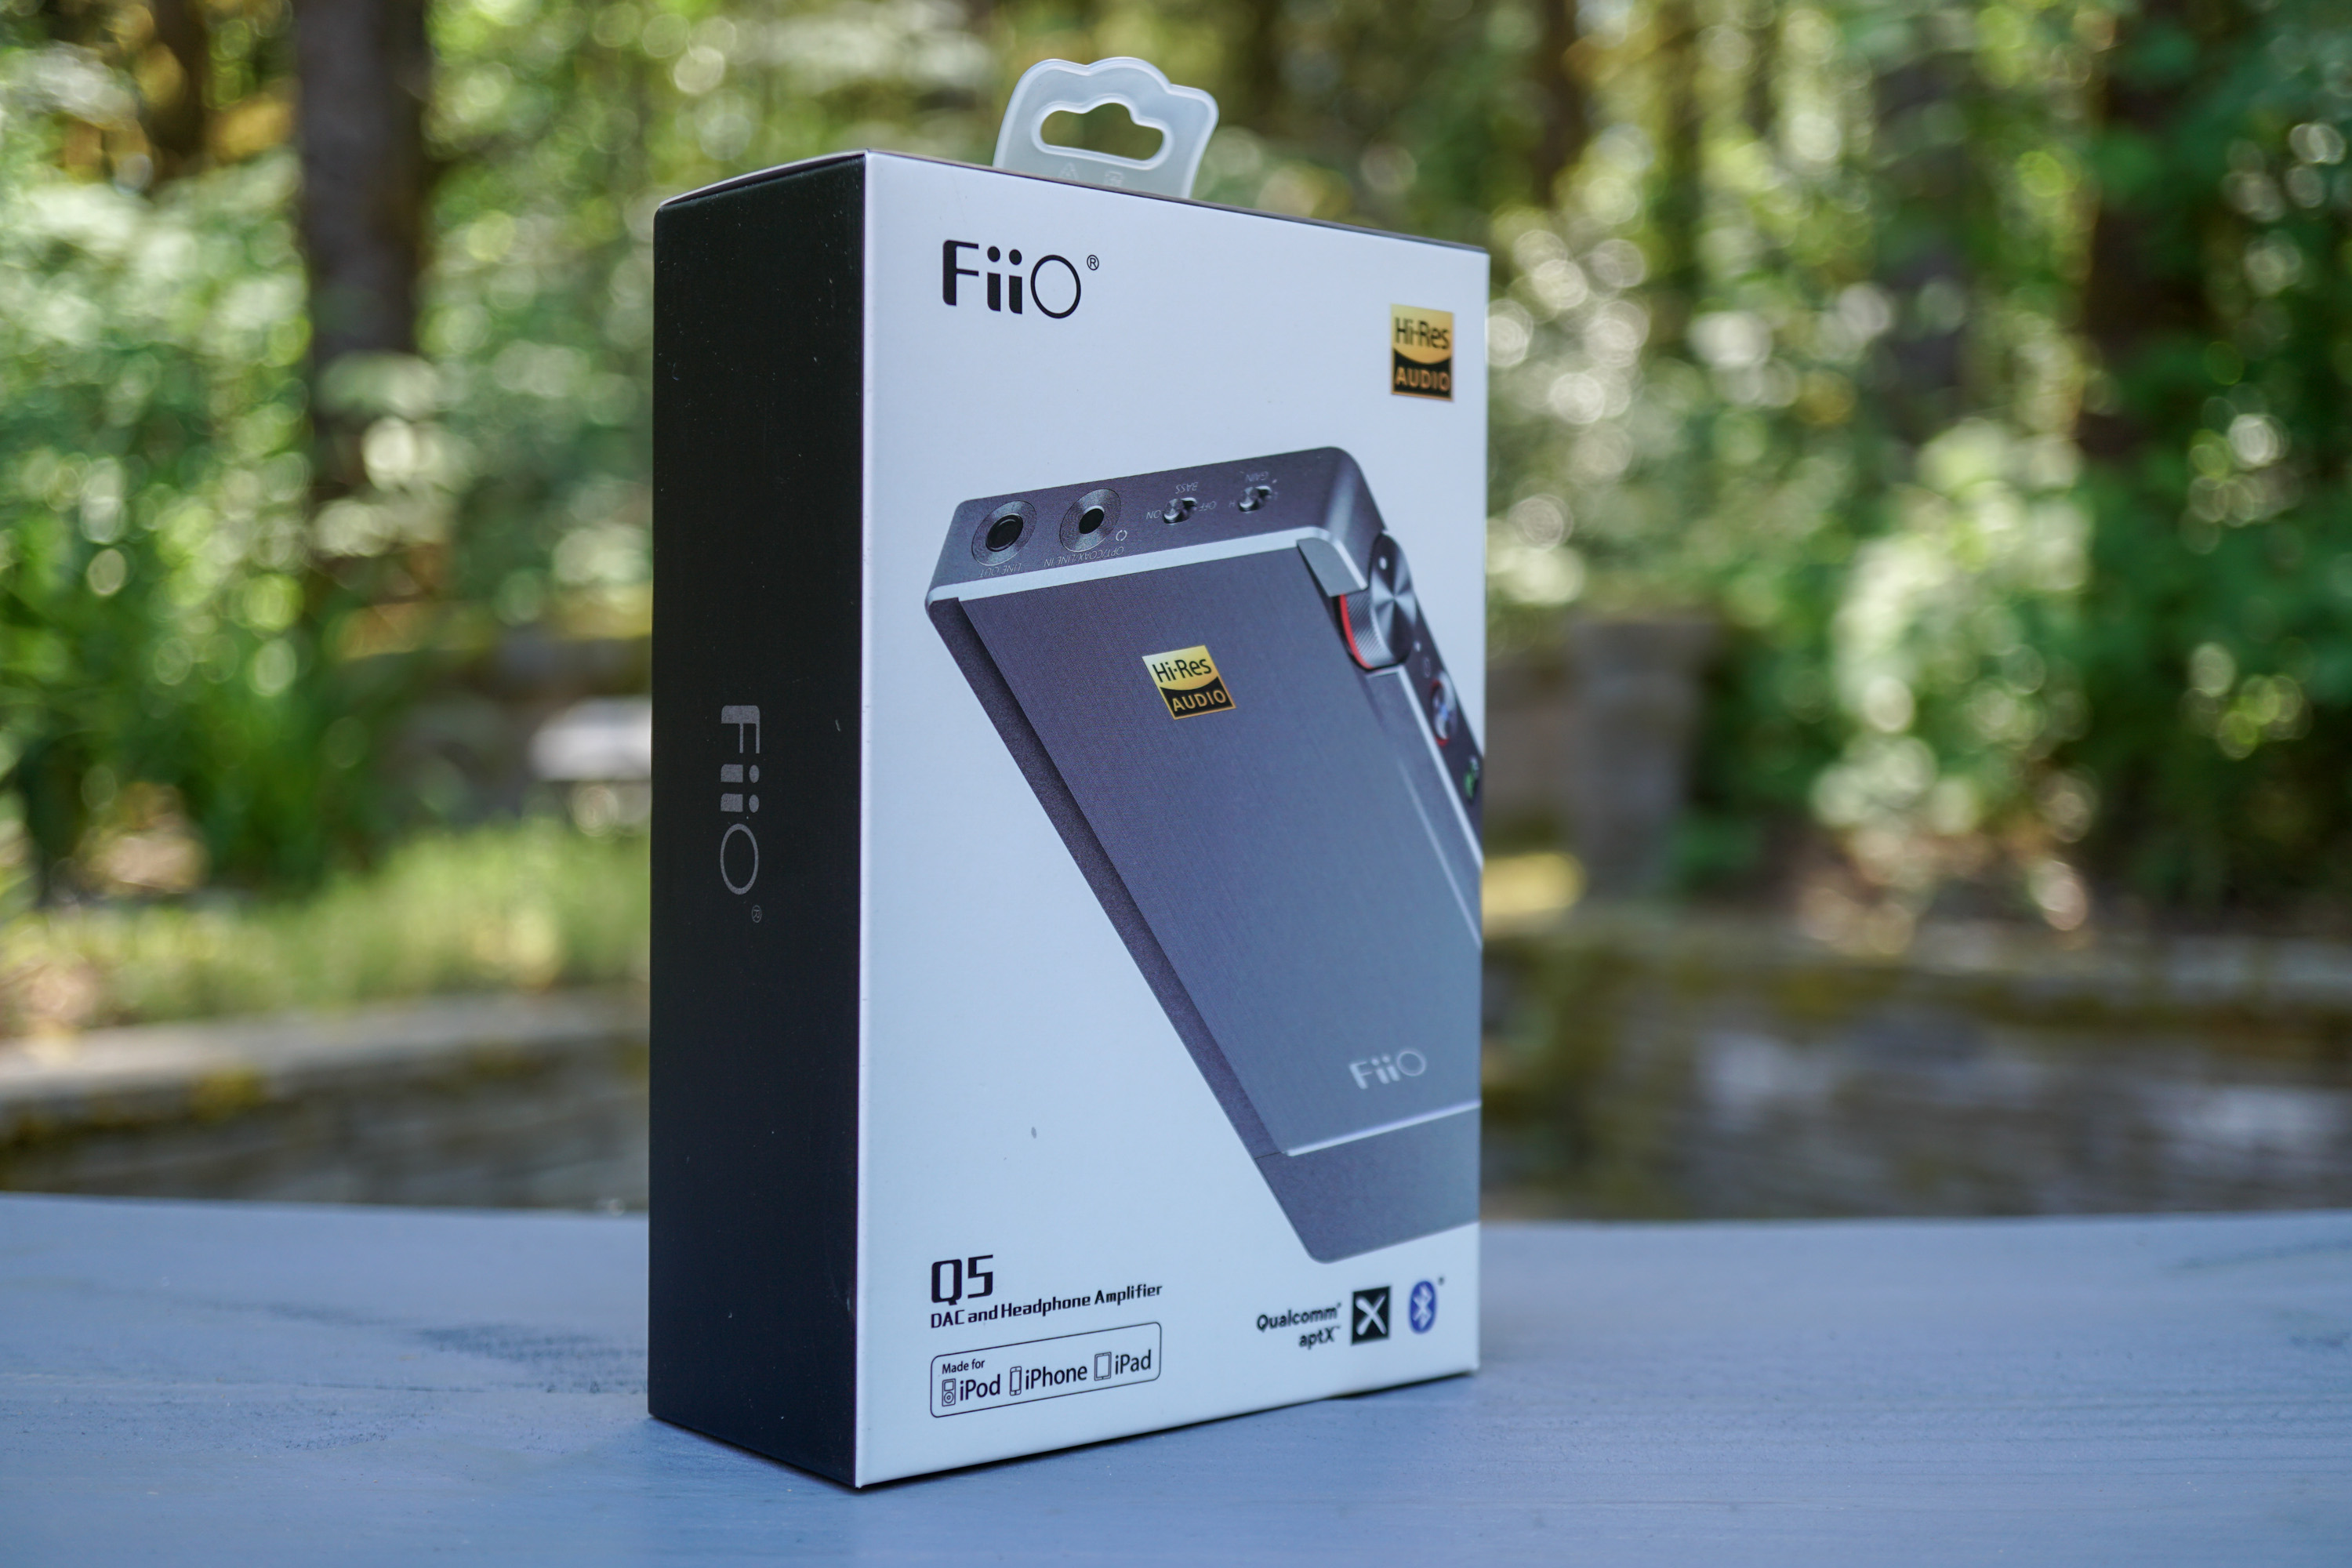 Fiio Q5 HiFi Bluetooth-Capable Portable DAC review: The value to beat